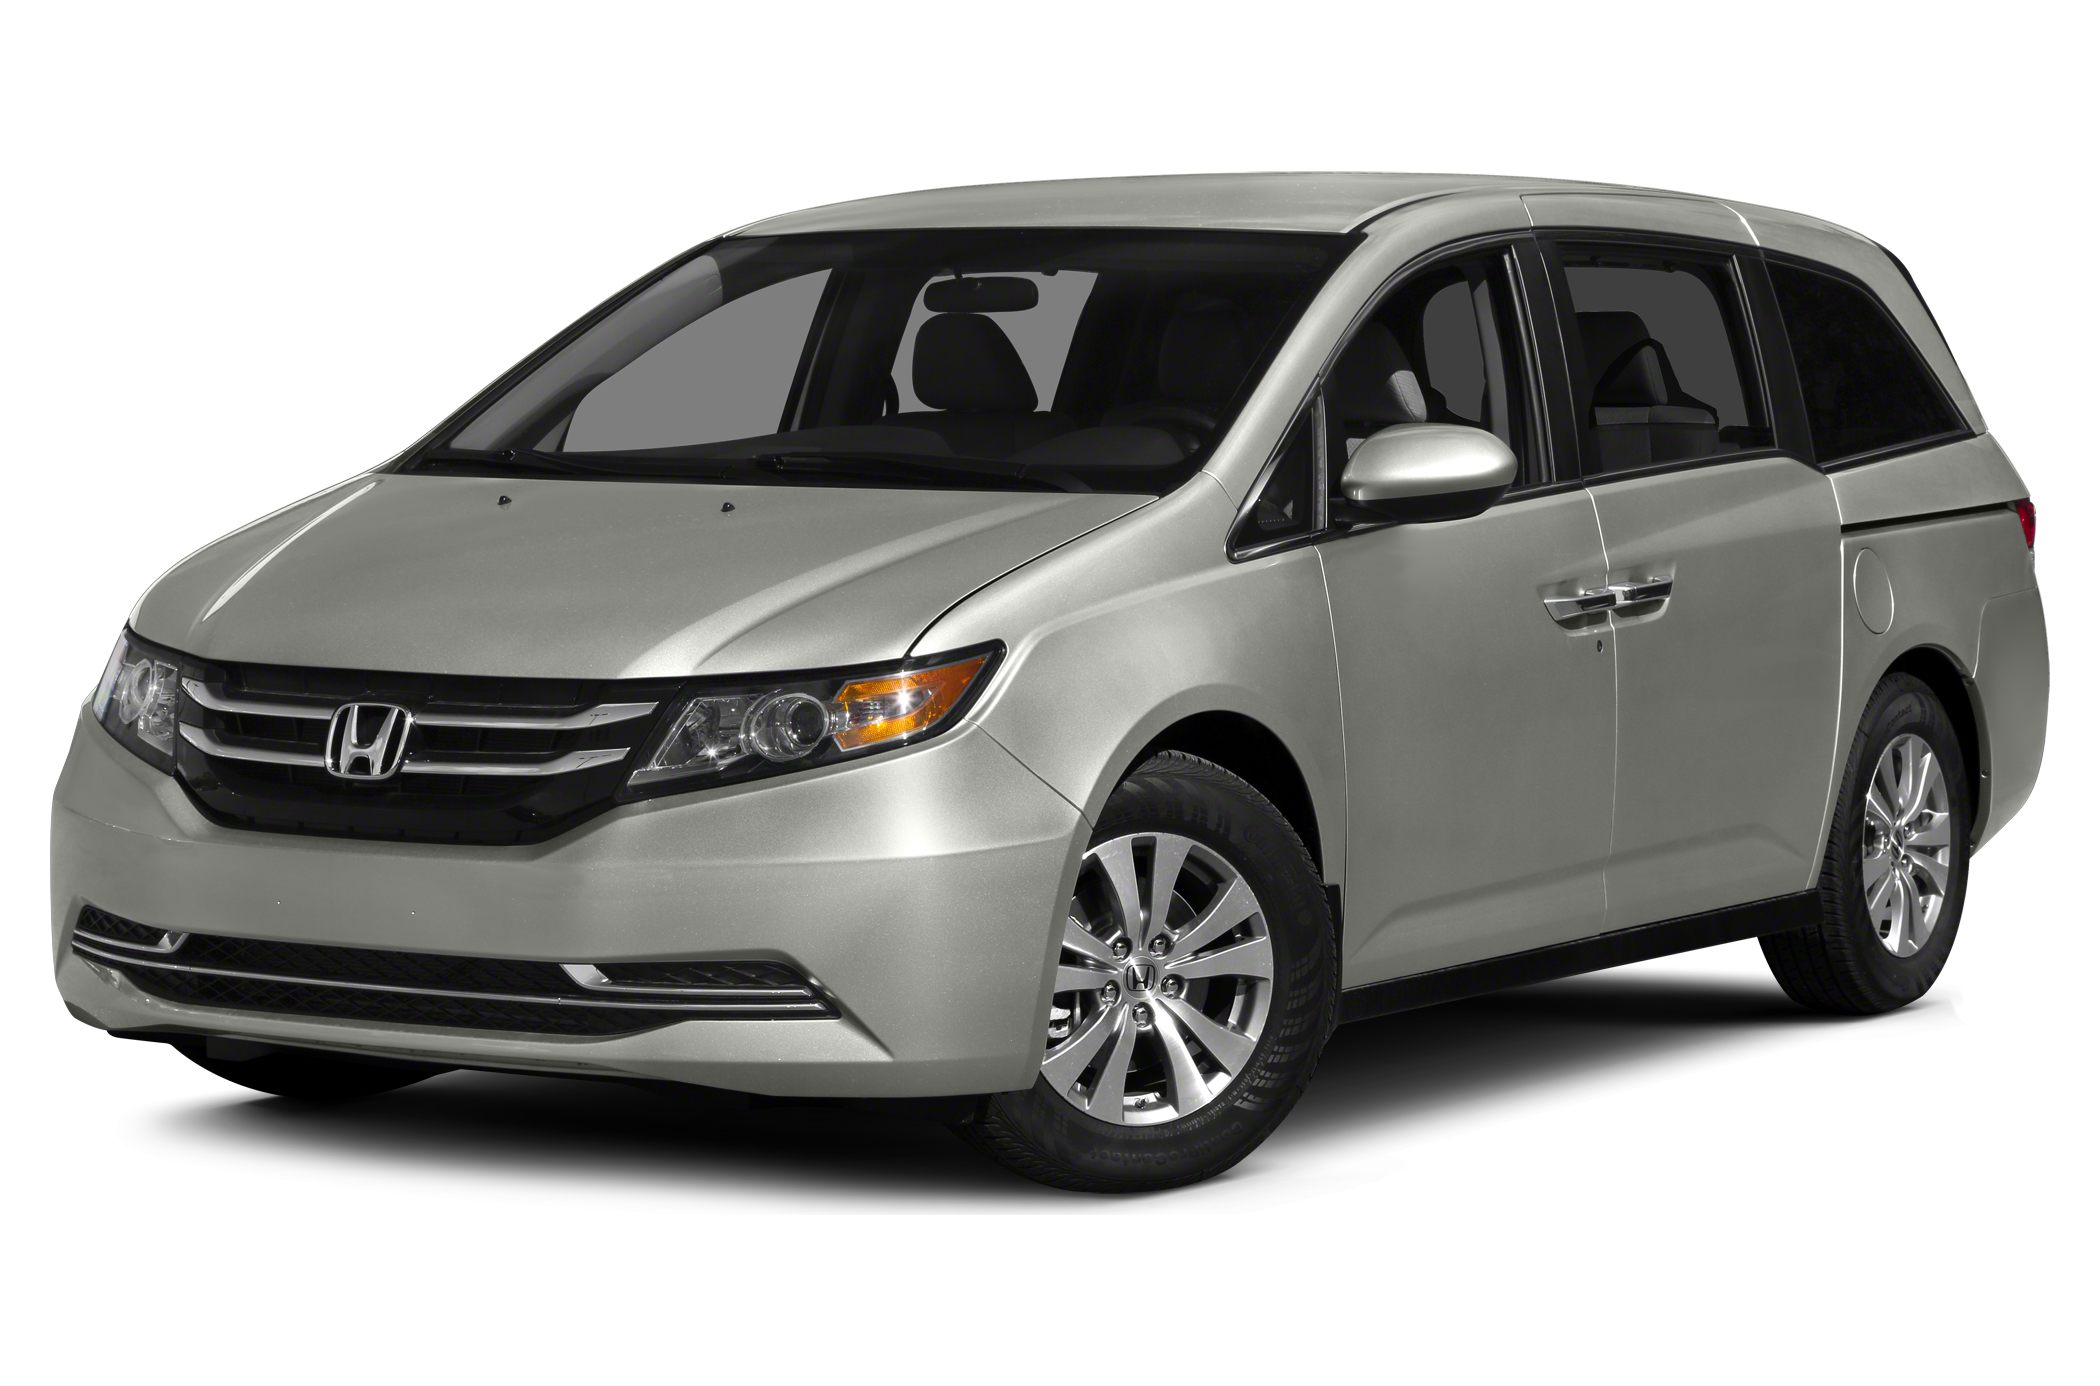 2015 Honda Odyssey EX Minivan for sale in Mesa for $30,689 with 3 miles.